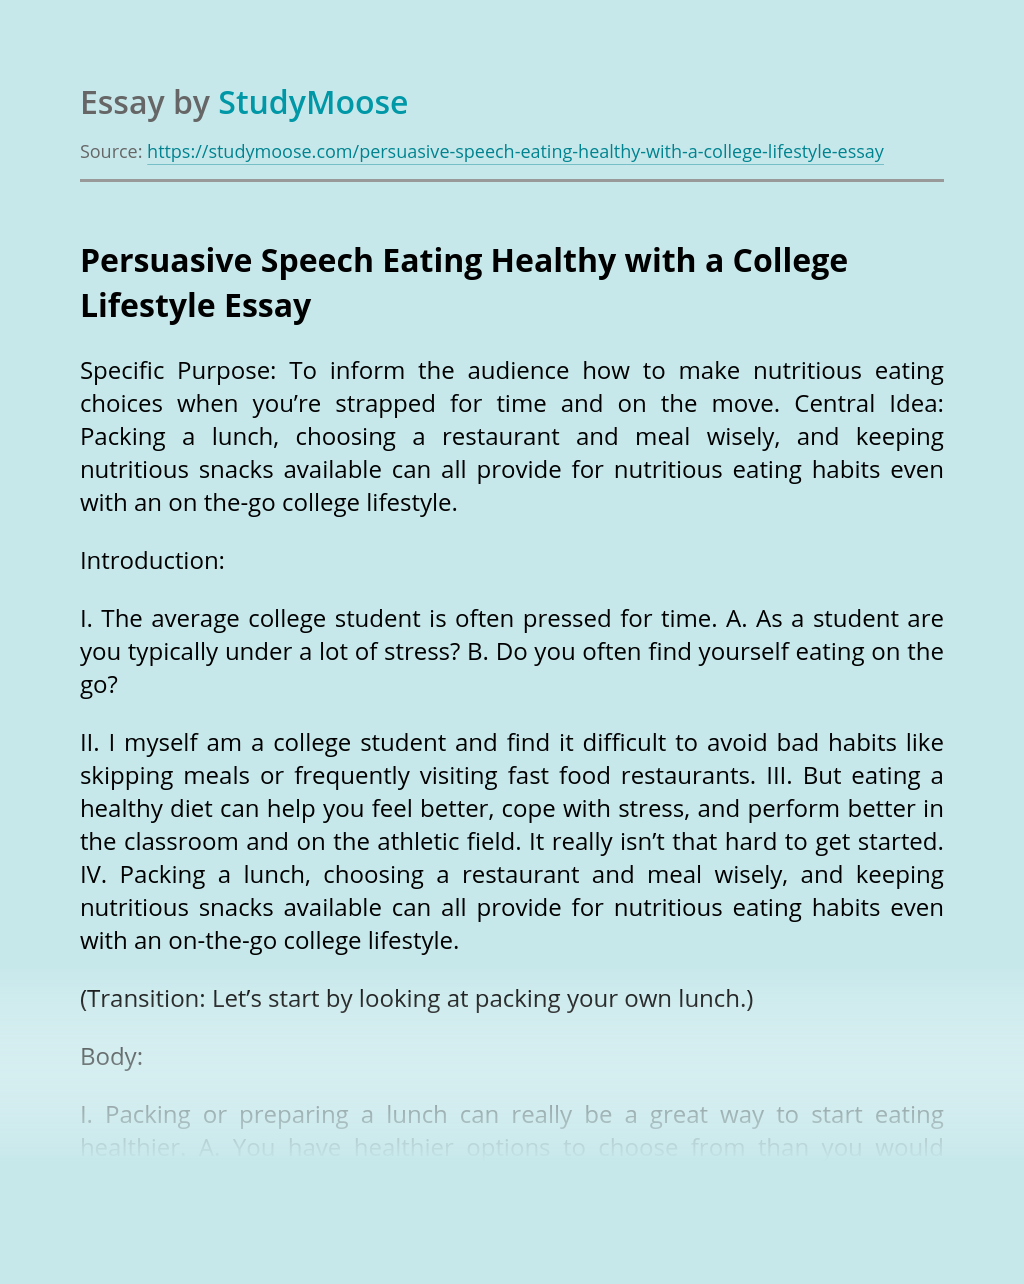 Persuasive Speech Eating Healthy with a College Lifestyle